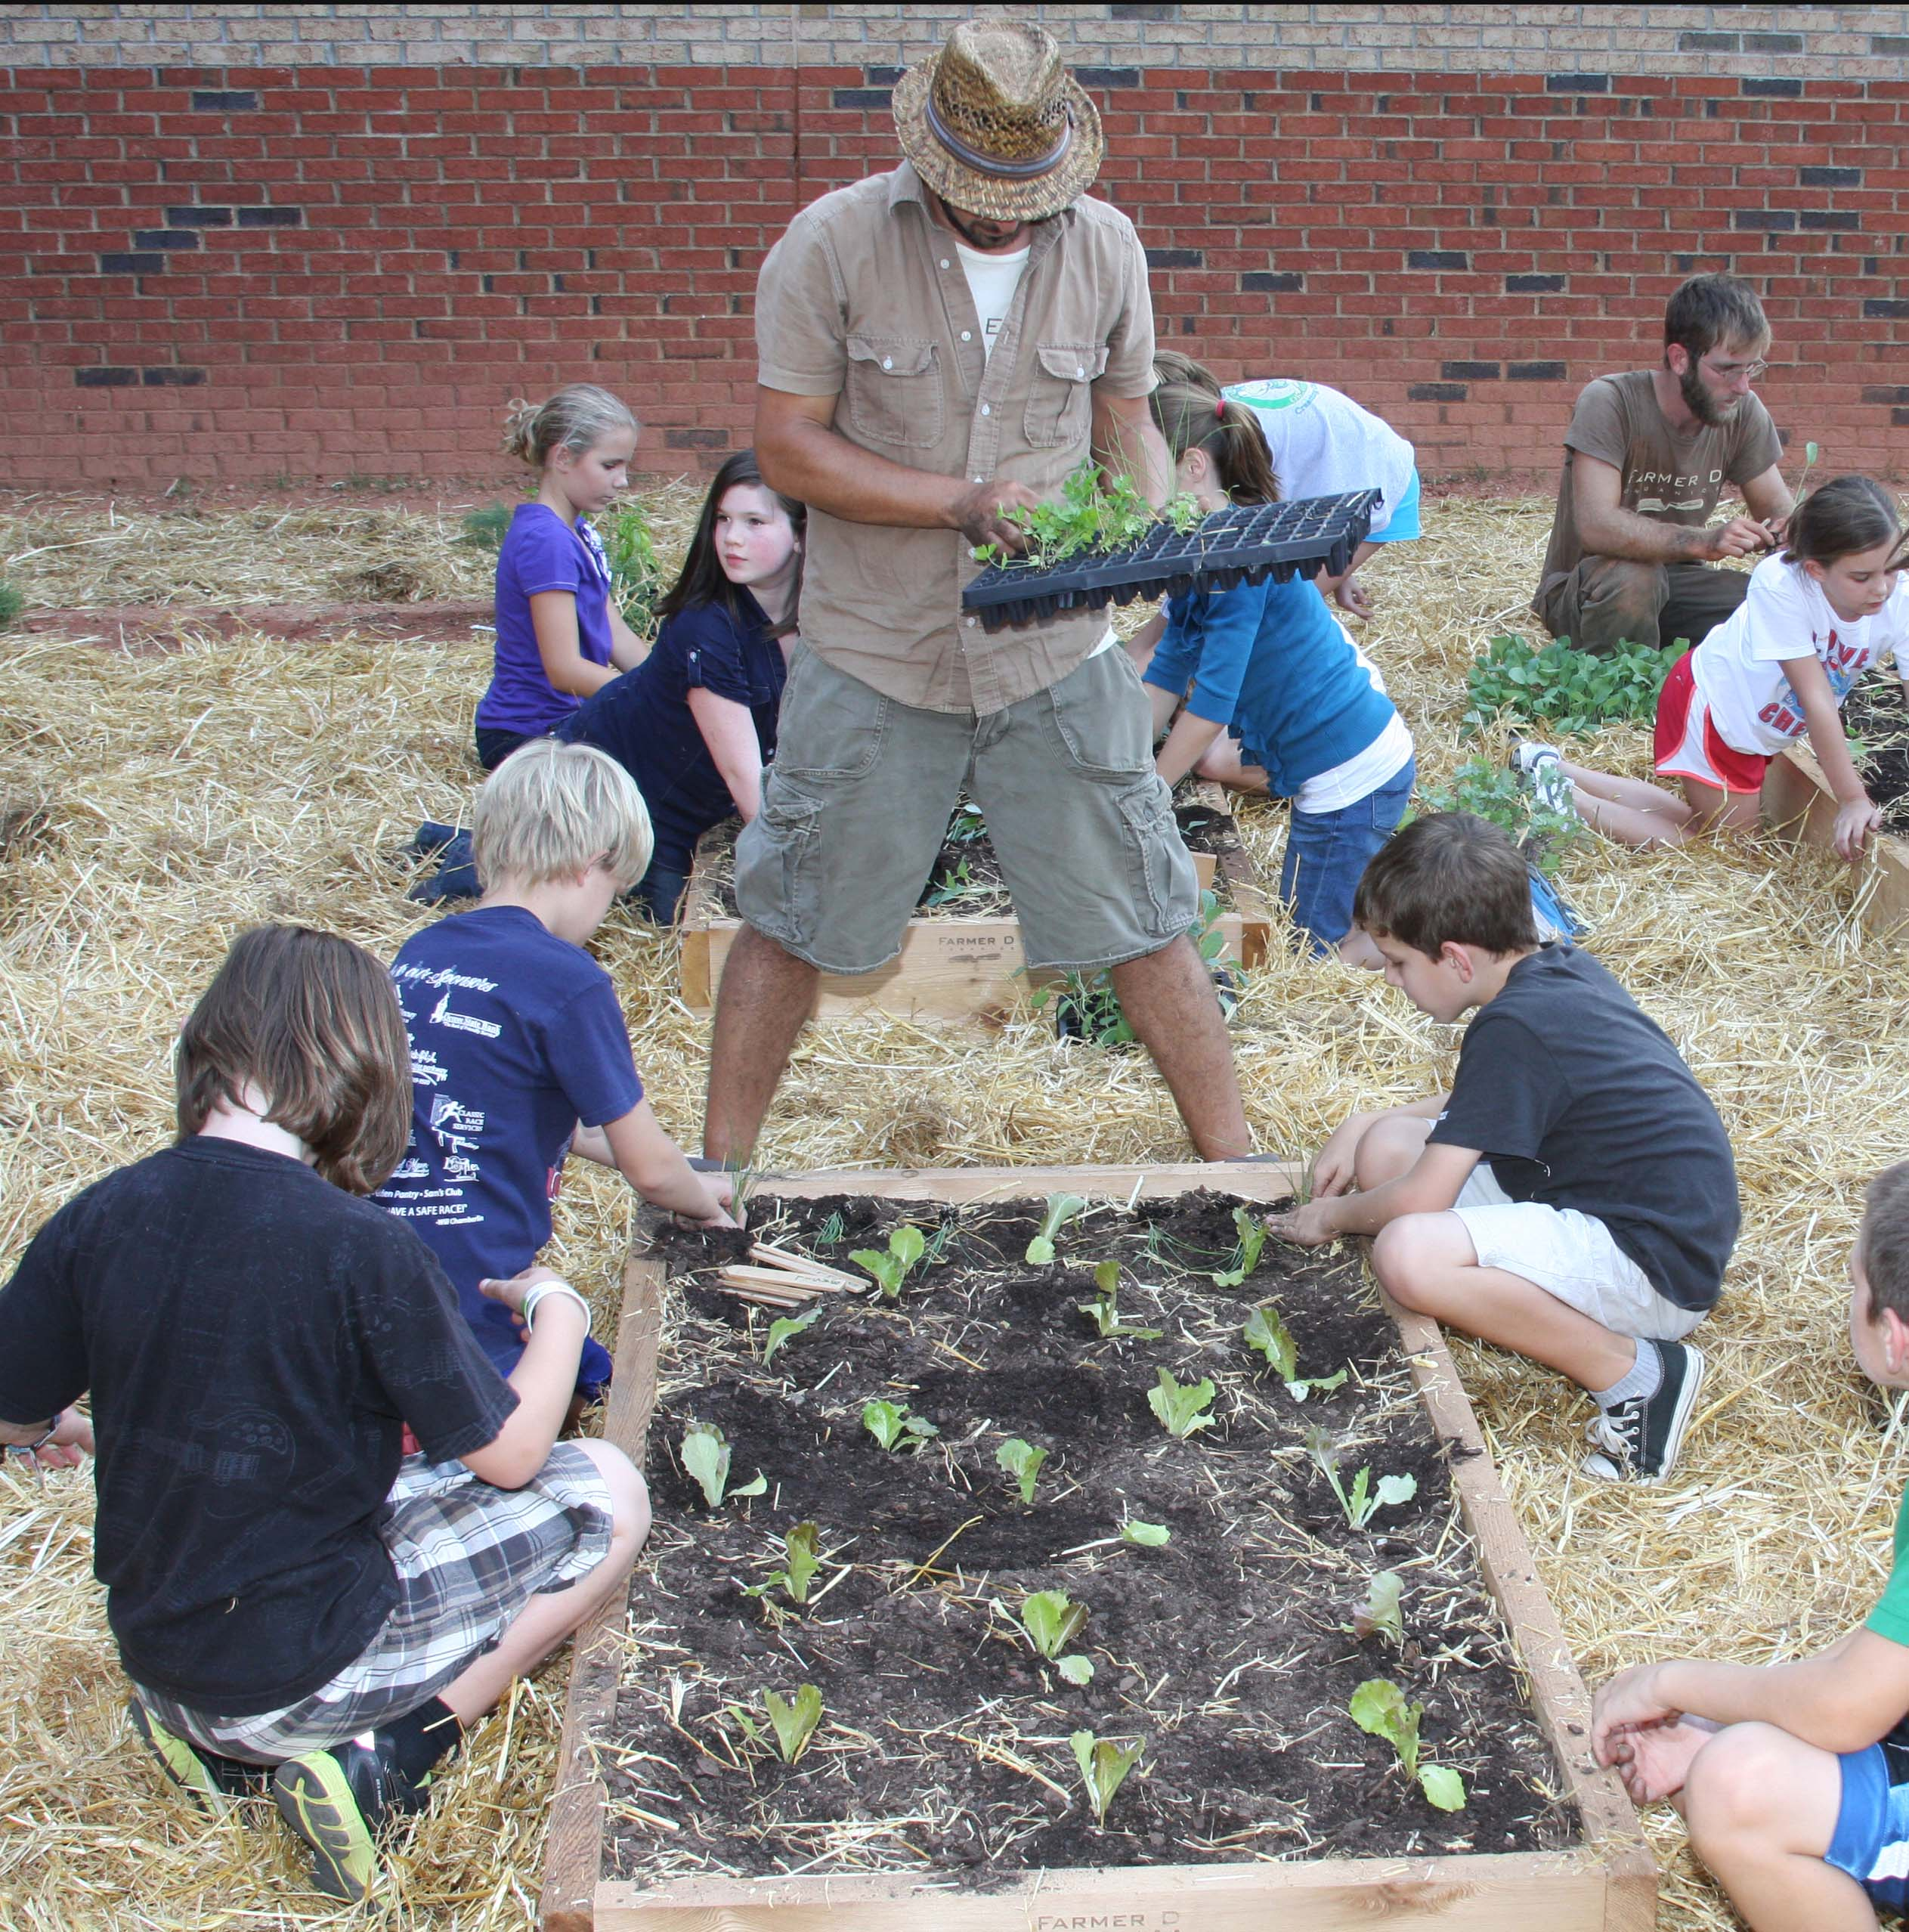 Students work in a school garden at High Shoals Elementary School.